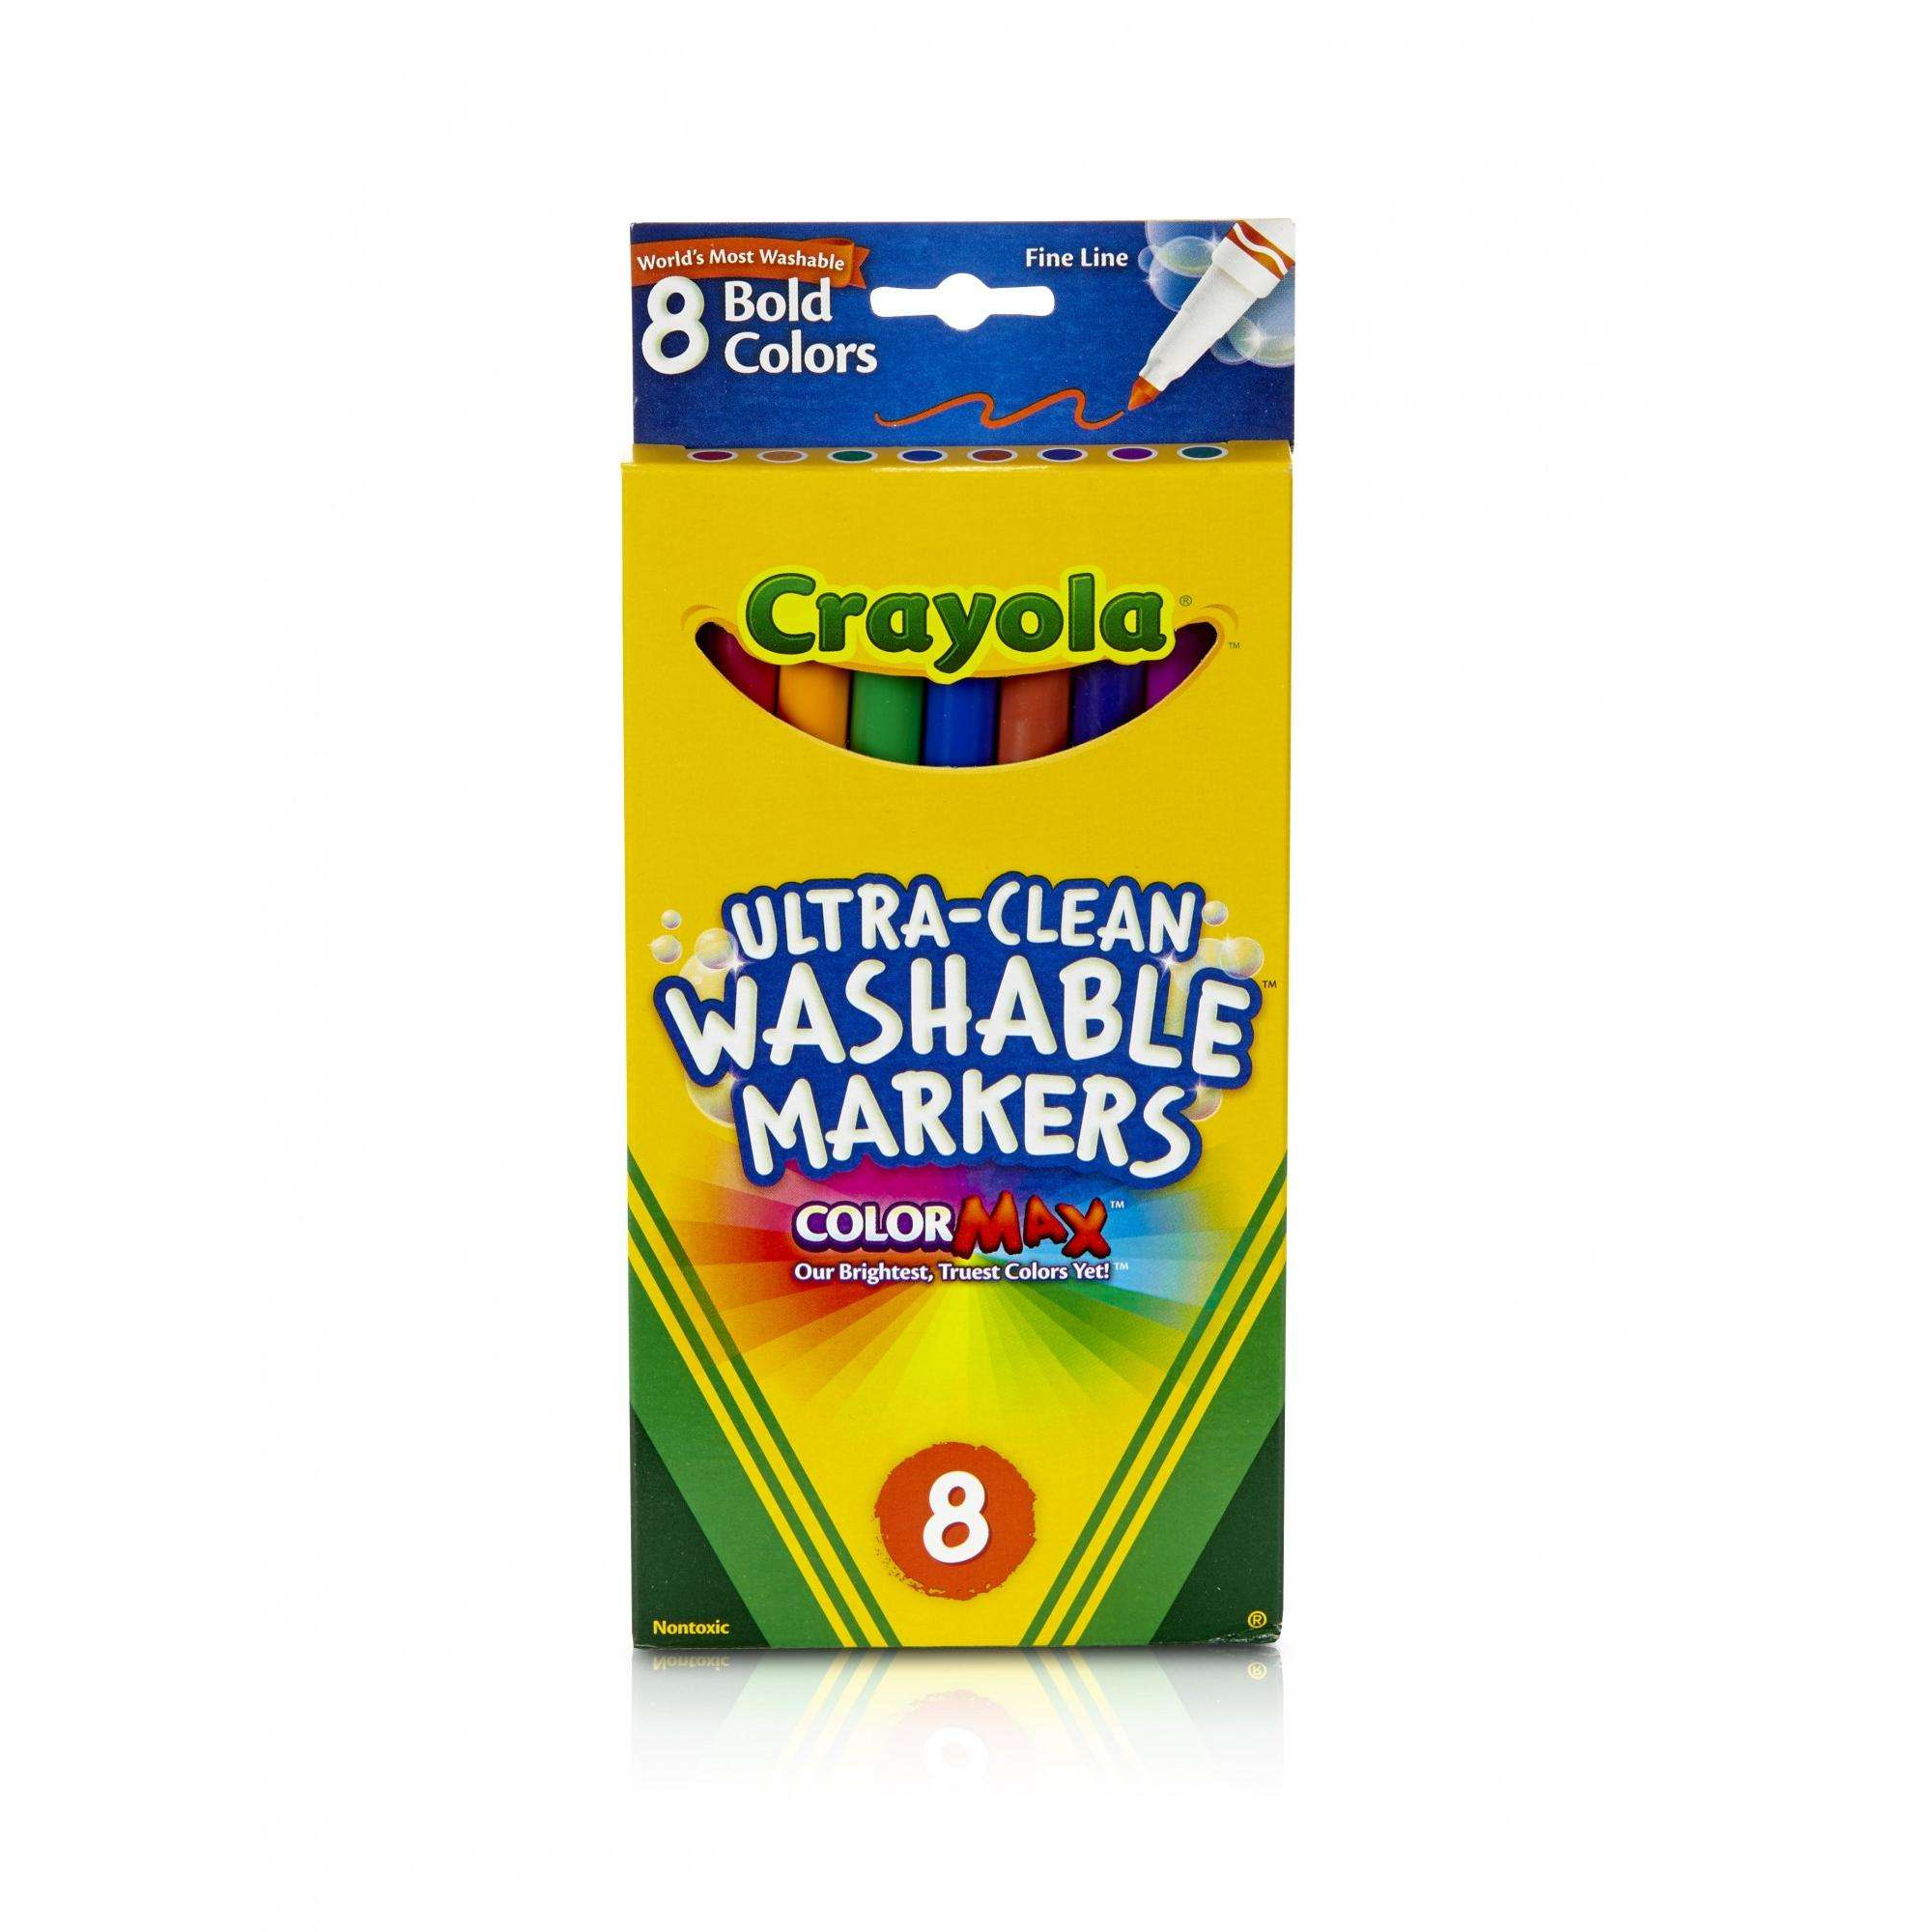 Crayola 8 Count Ultra-Clean Washable Fine Line Color Max Bold Markers